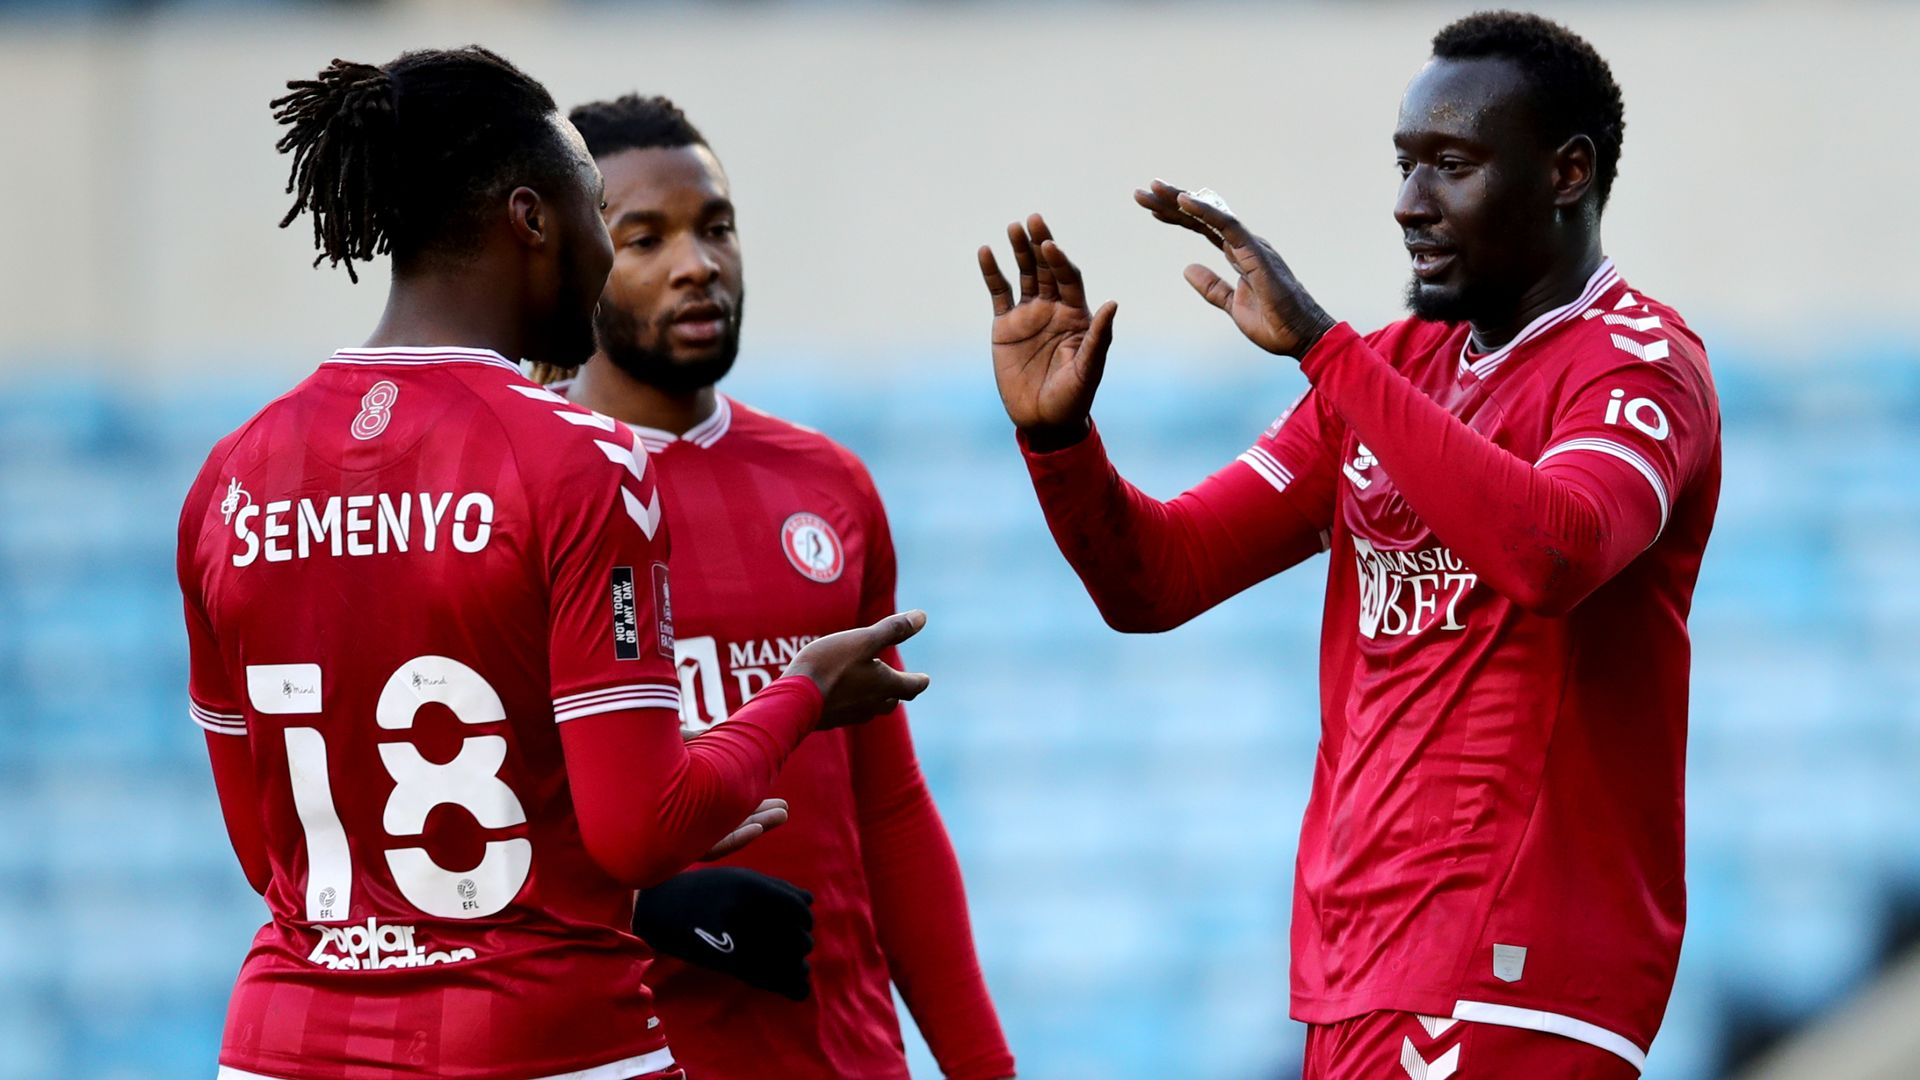 Bristol City through with dominant win at Millwall